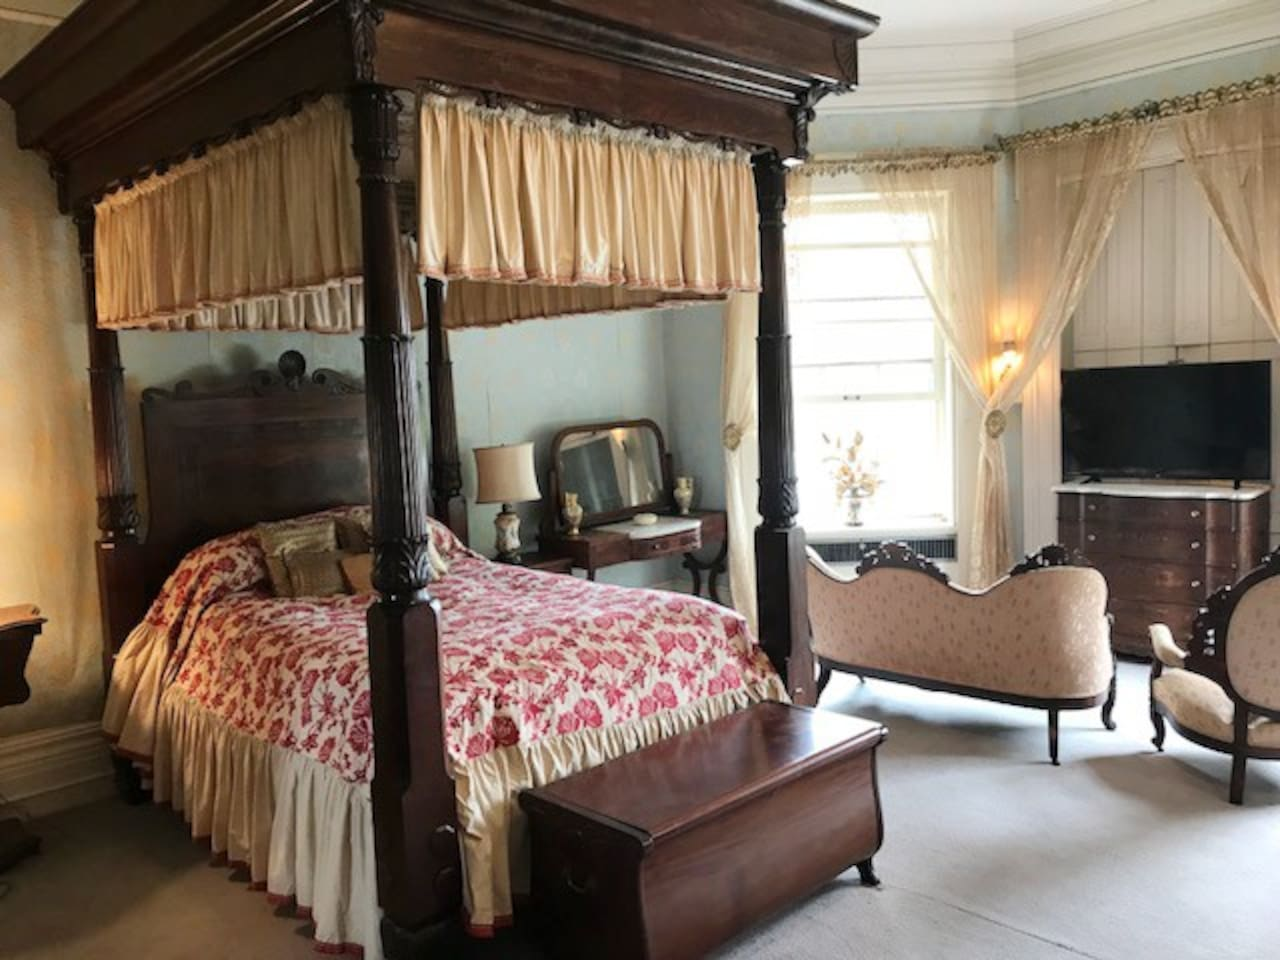 A view of the spacious living area of Alice's Room, with over 400 square feet including the private bath.